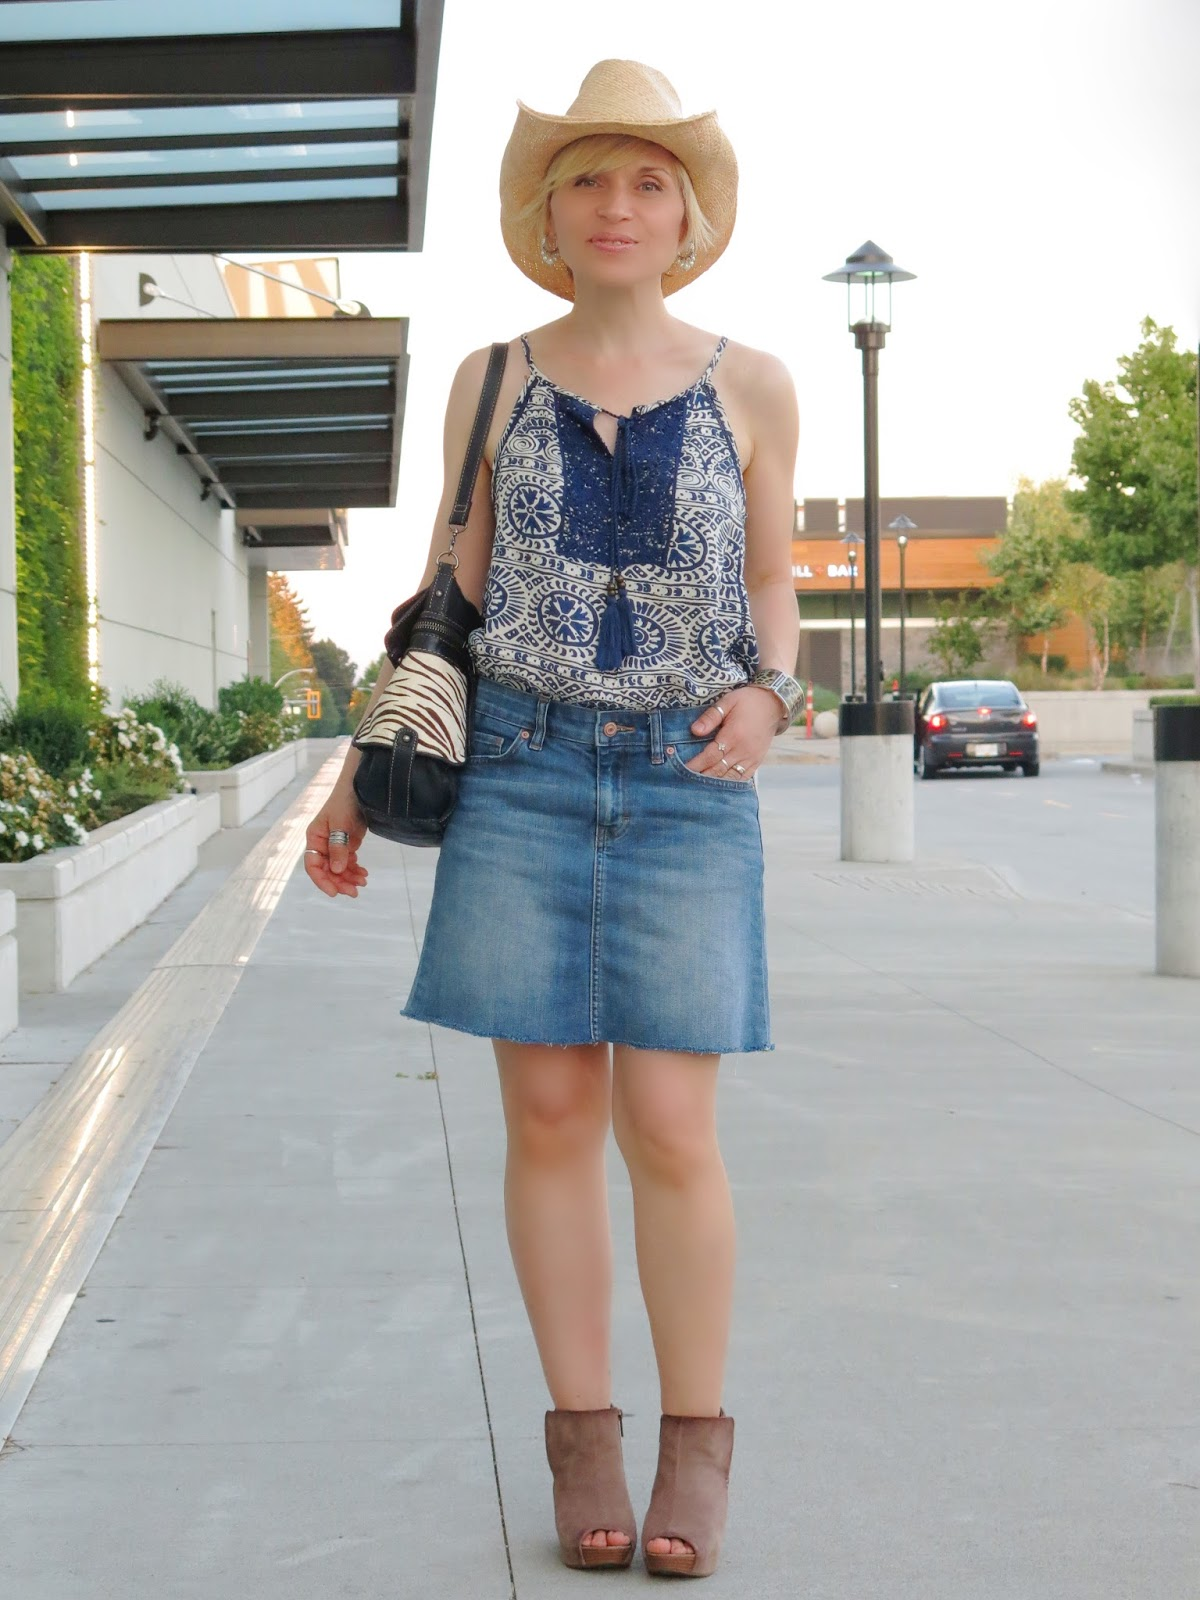 Giddy-up:  a cut-off denim skirt with a peasant tank, open-toe booties, and a cowboy hat